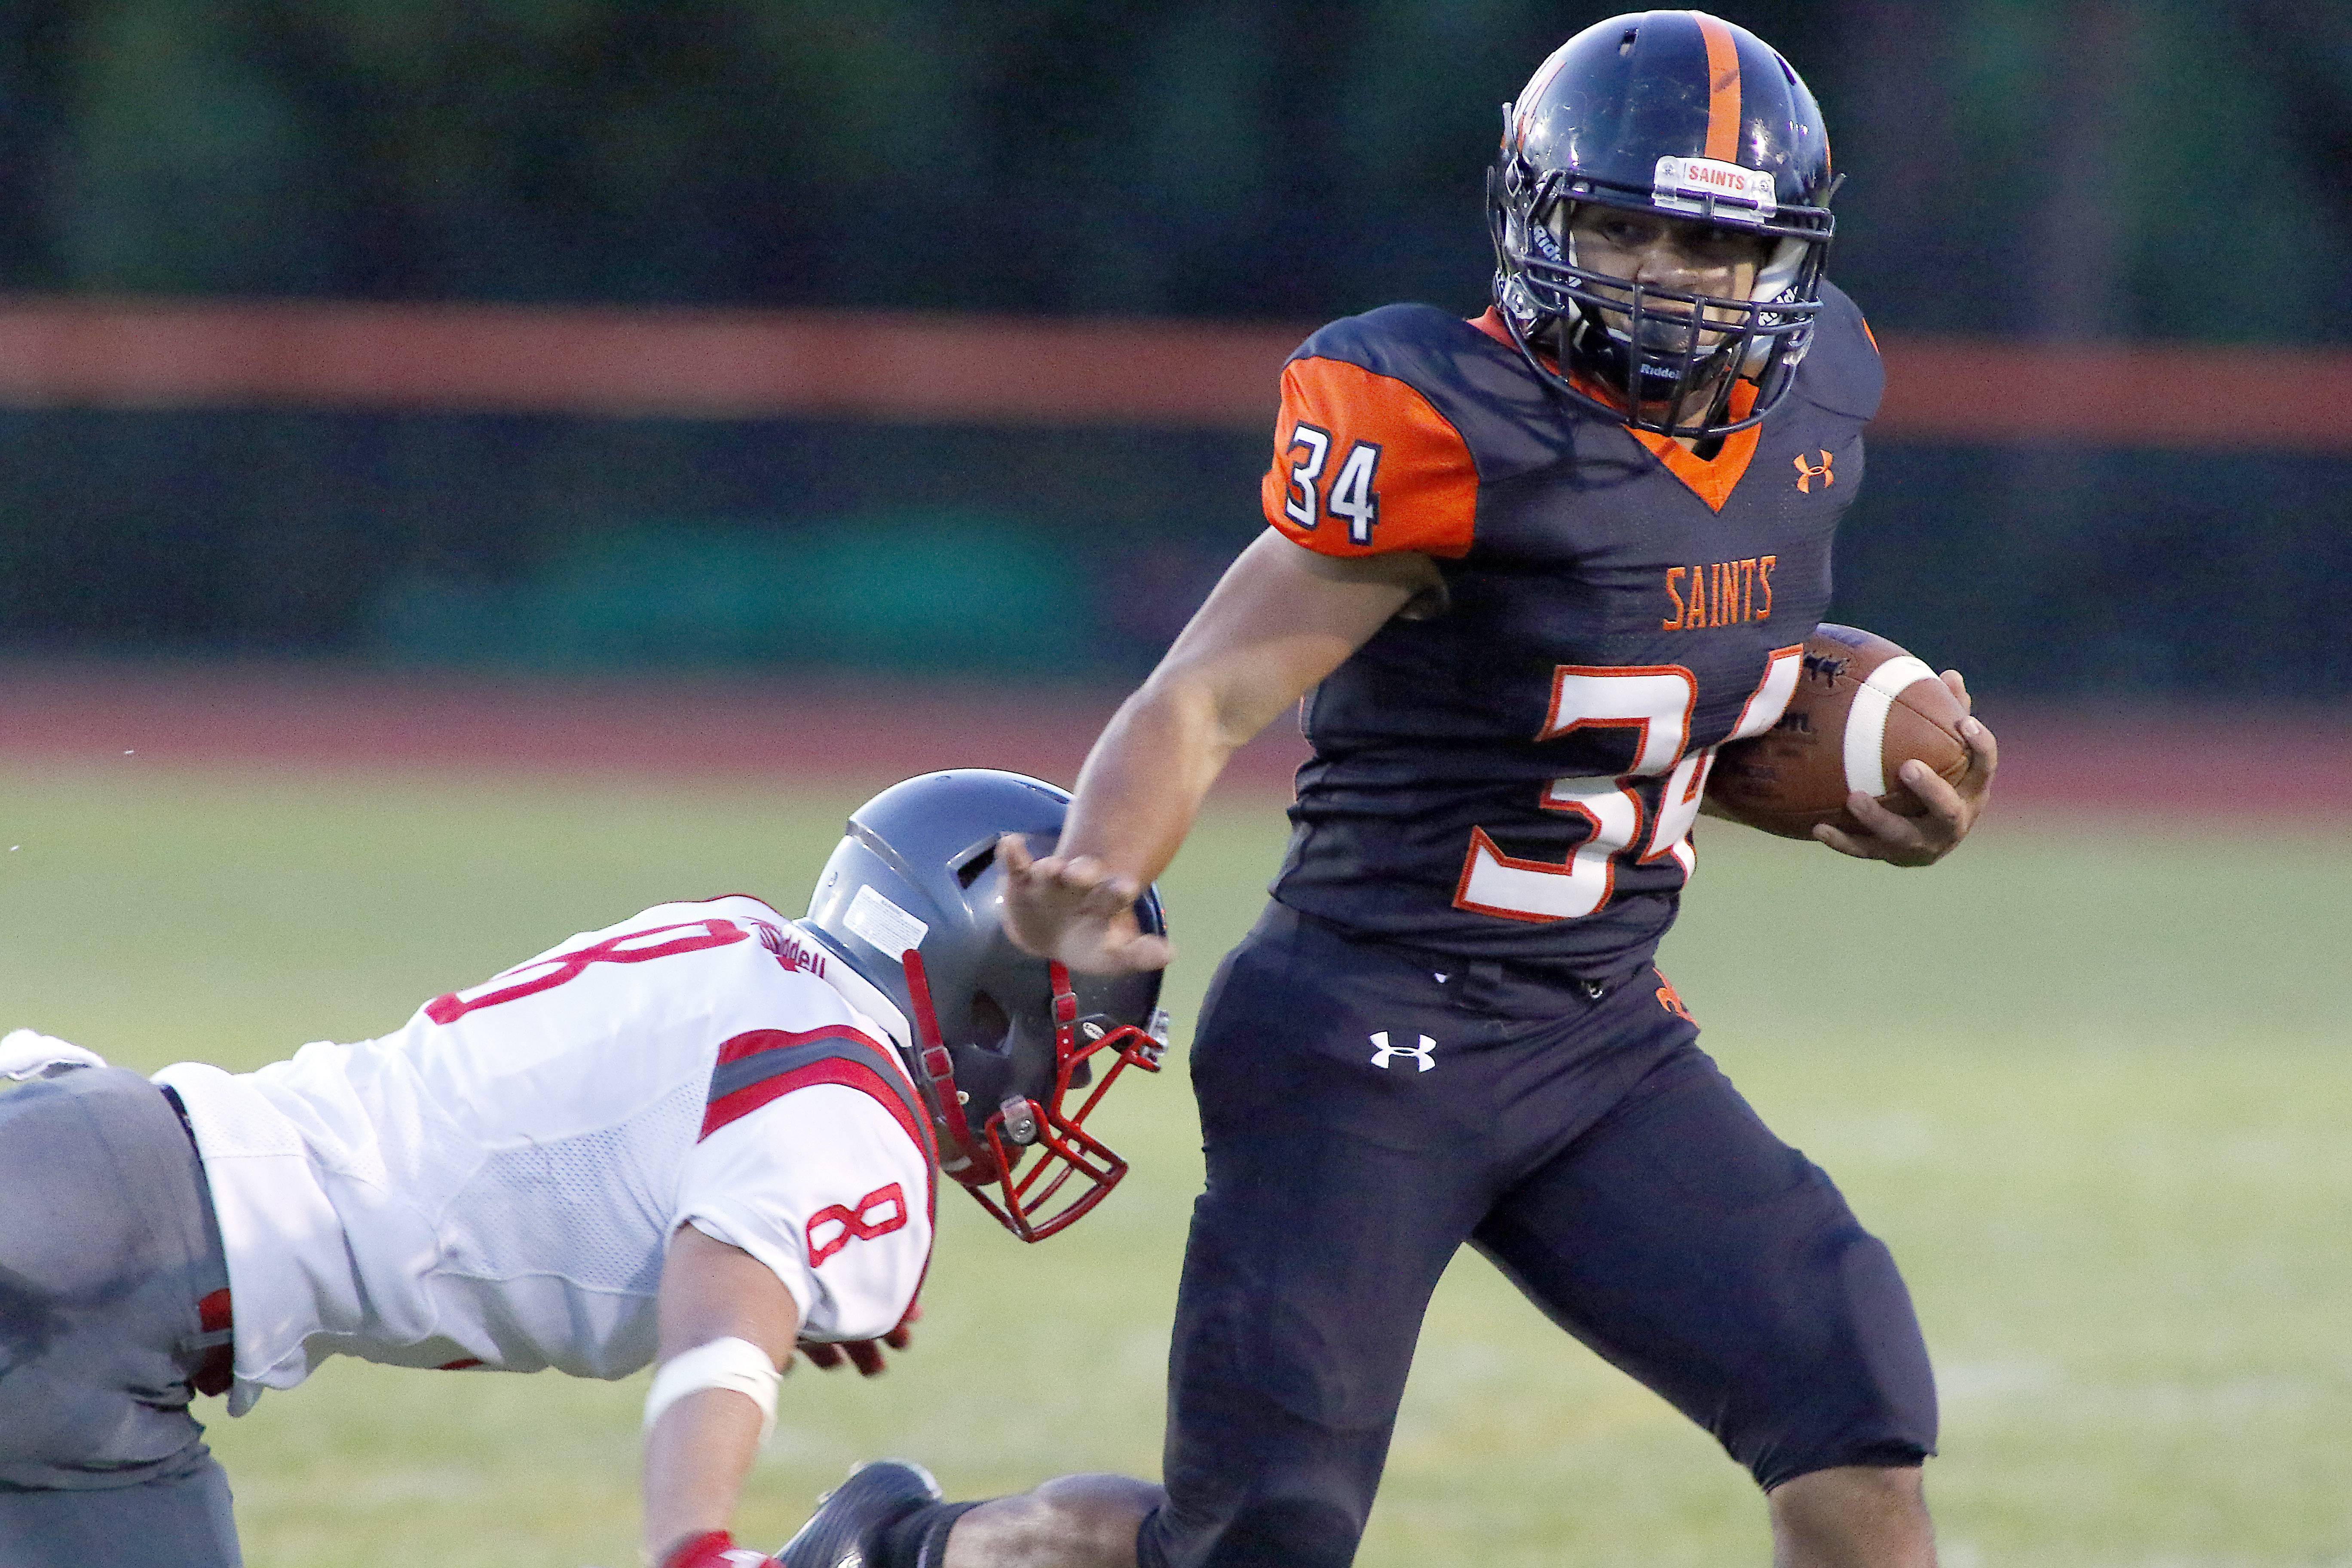 St. Charles East has its way with South Elgin